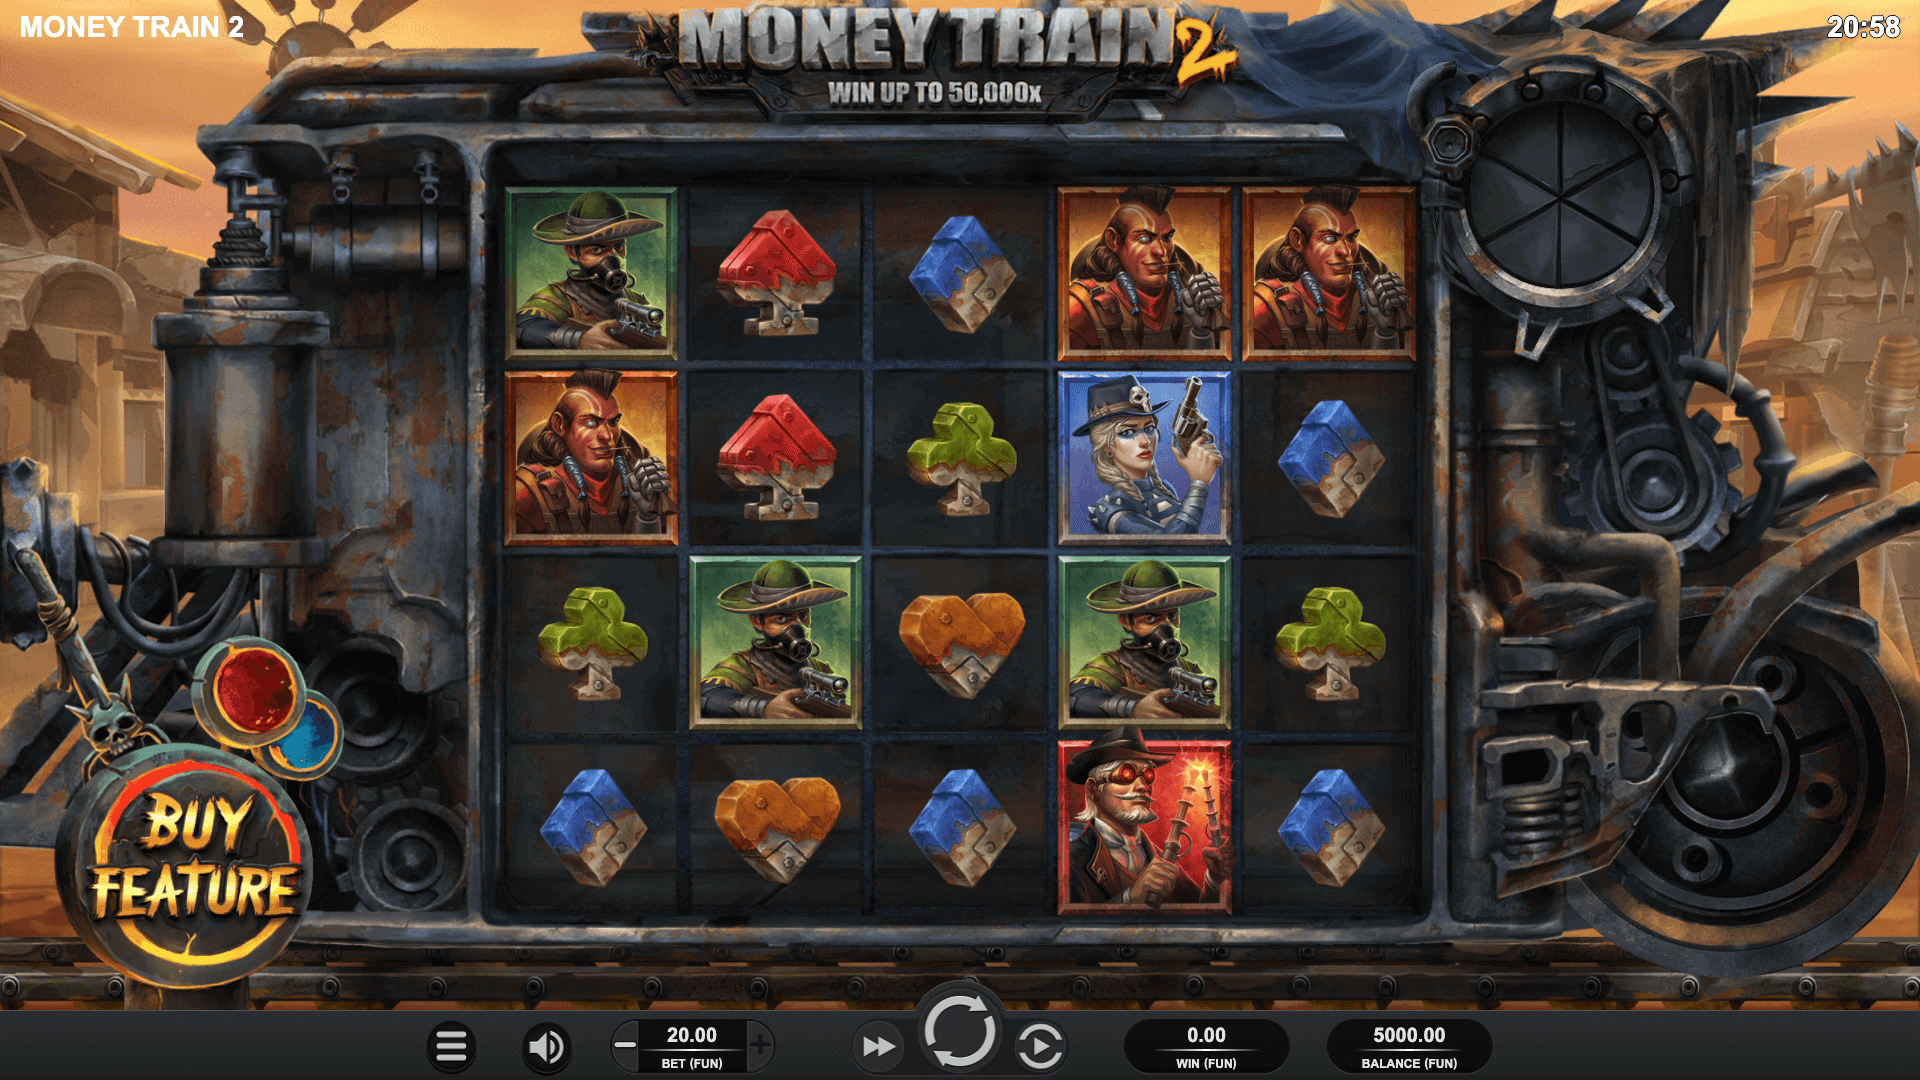 Slot machine Money Train 2 by Relax Gaming Screenshot